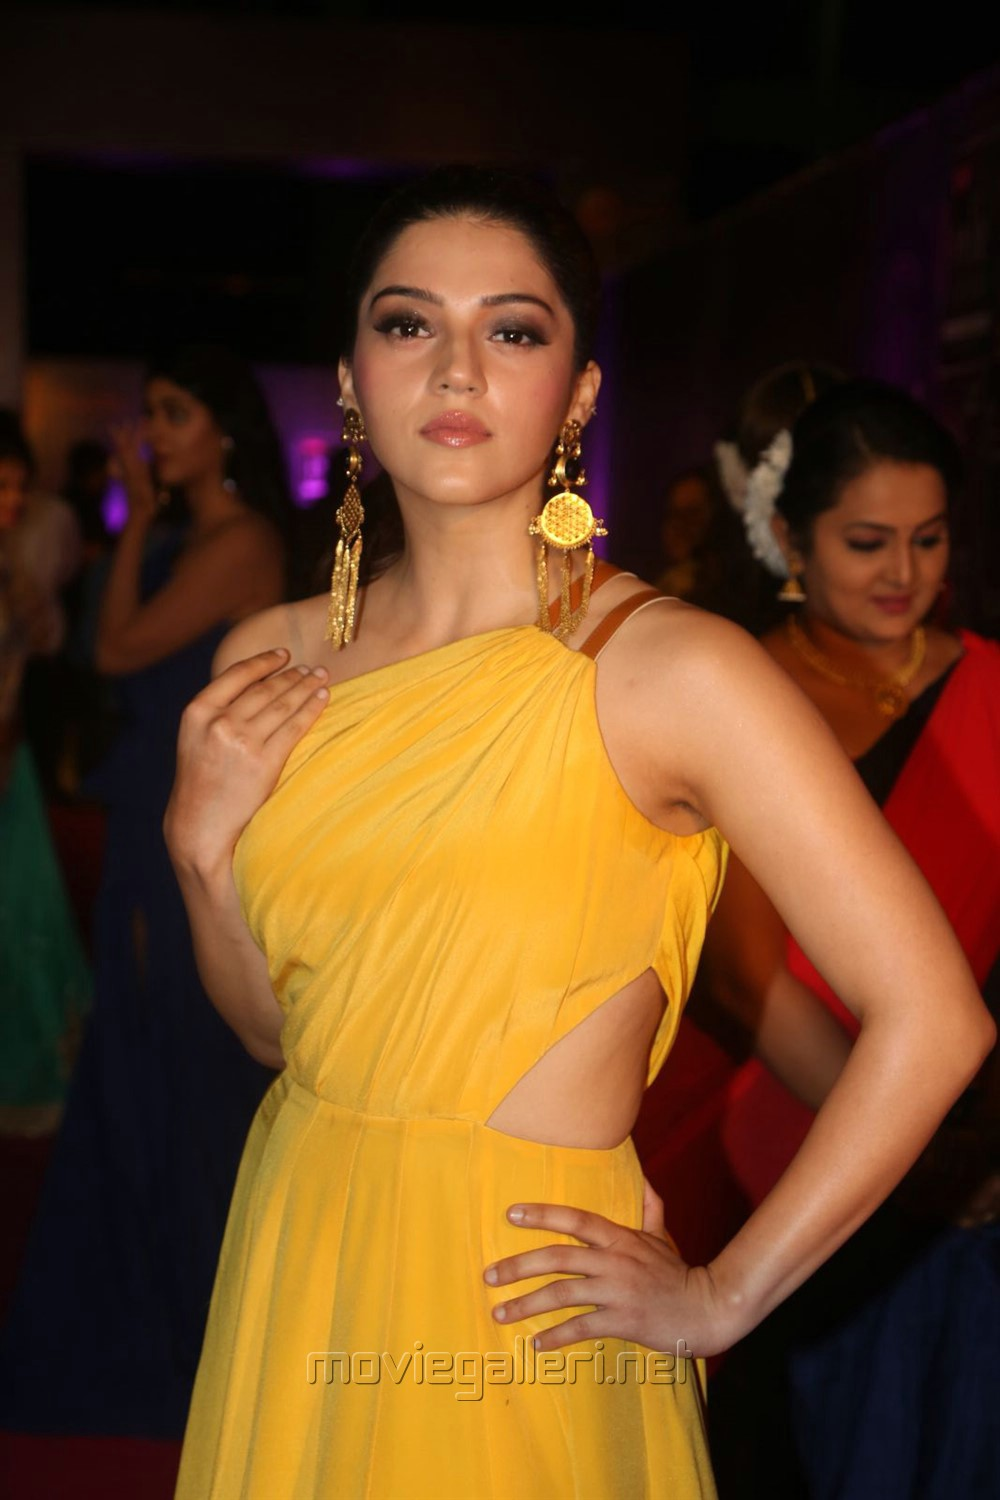 Actress Mehreen Kaur Pirzada Stills in Yellow Dress